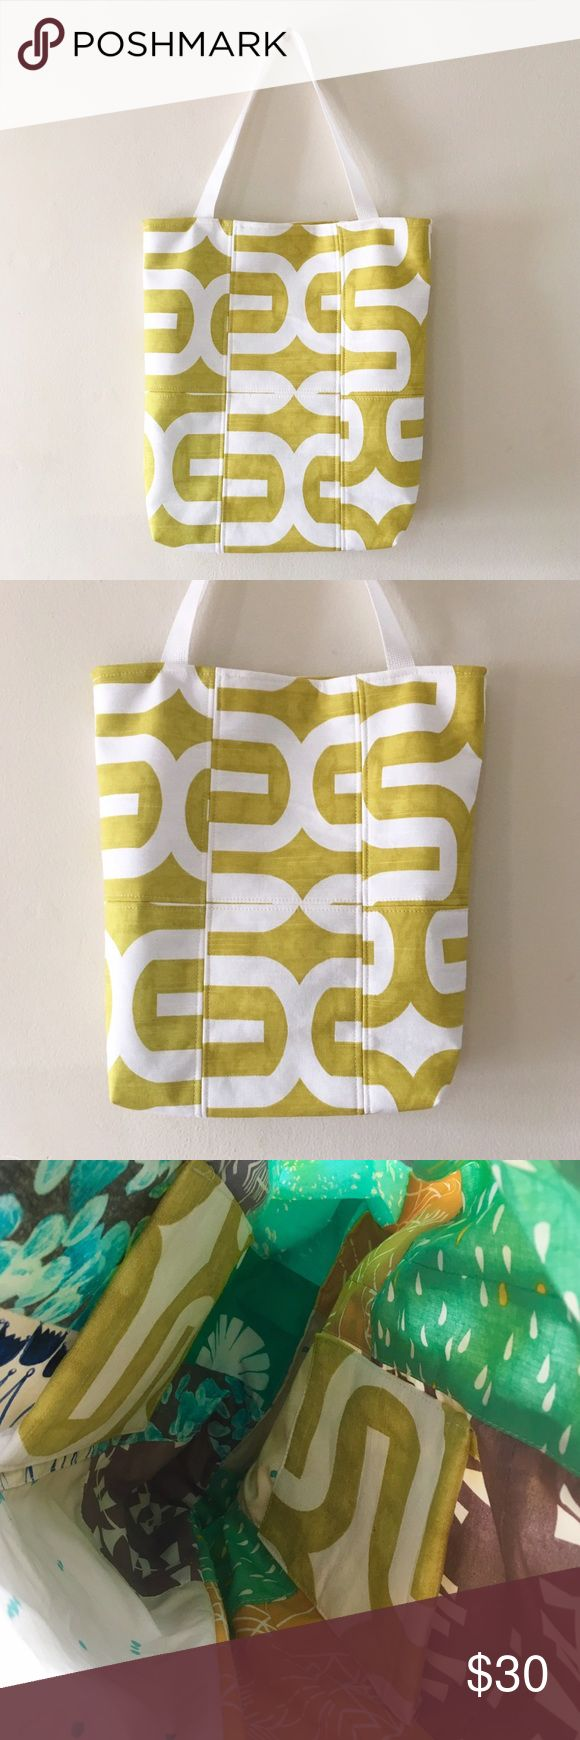 🆕Yellow Geometric Tote Bag - HANDMADE Lovely tote bag made by my father. It's dimension are 16 inches tall by 14 inches wide. It's fleece fusible. The last photo is of the inside. Lovely for any occasion. Urban Outfitters Bags Totes